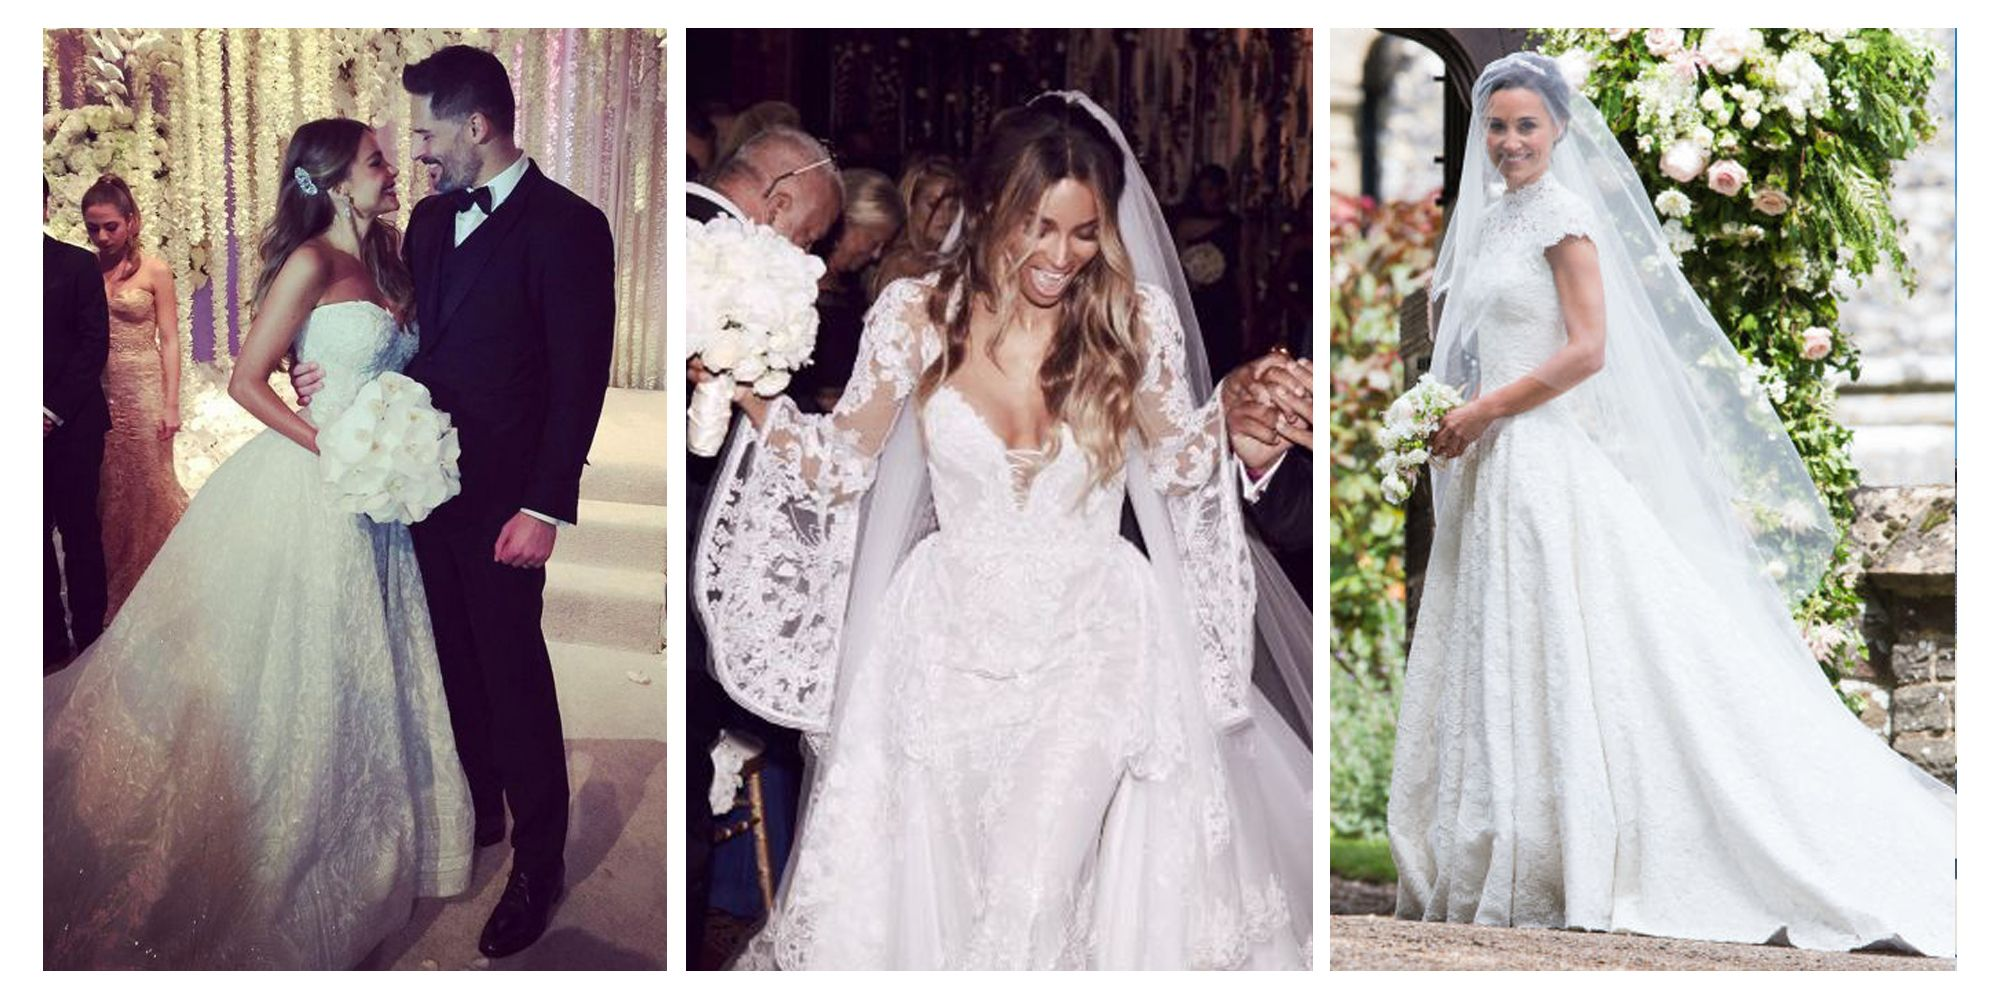 Best Celebrity Wedding Dresses The Most Stunning Celebrity Wedding